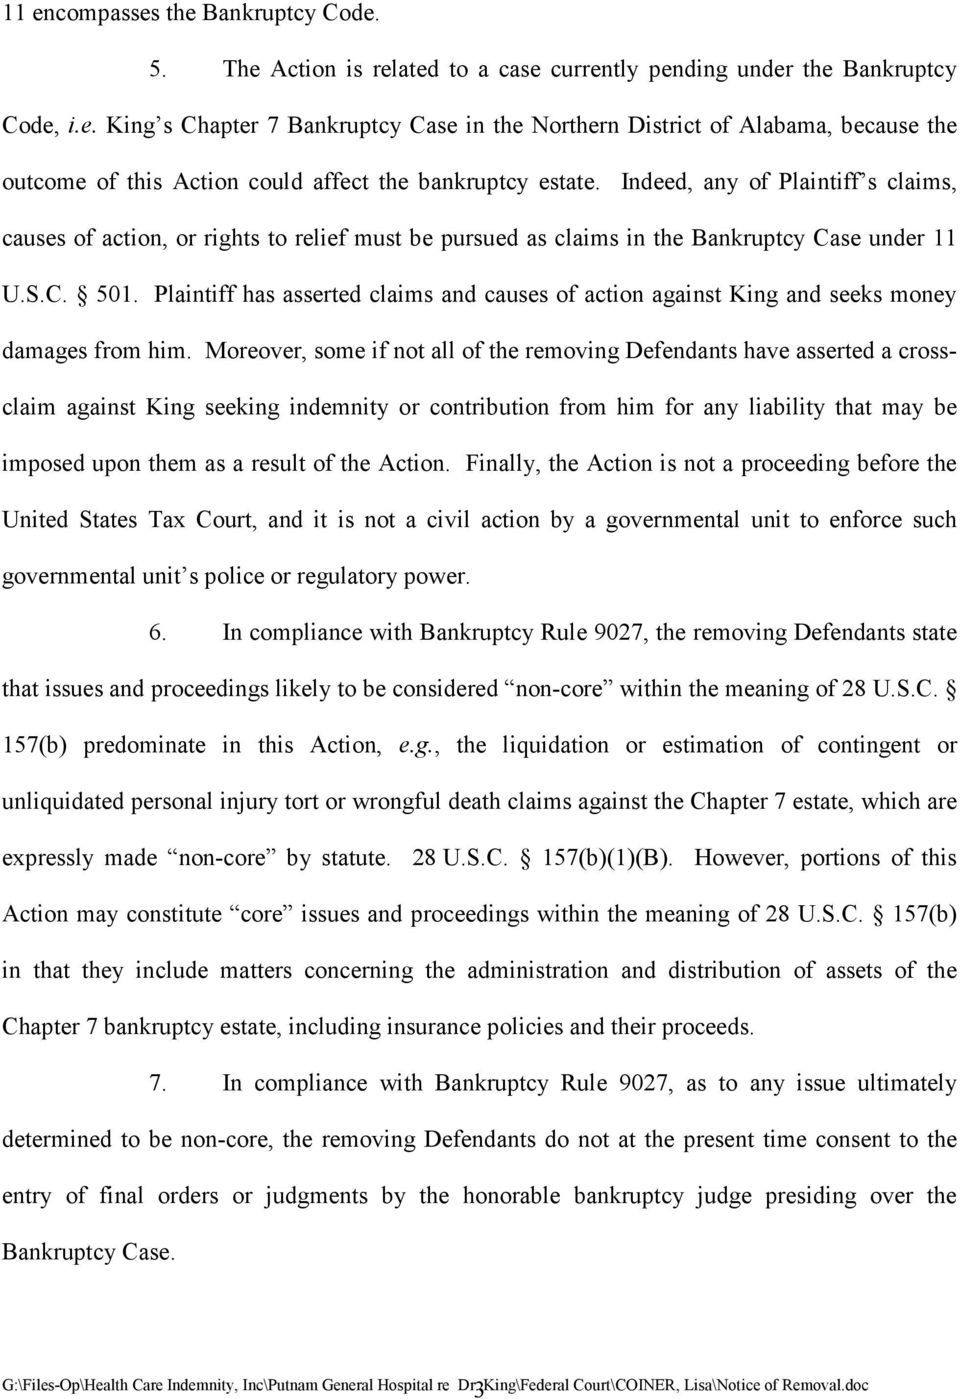 Plaintiff has asserted claims and causes of action against King and seeks money damages from him.